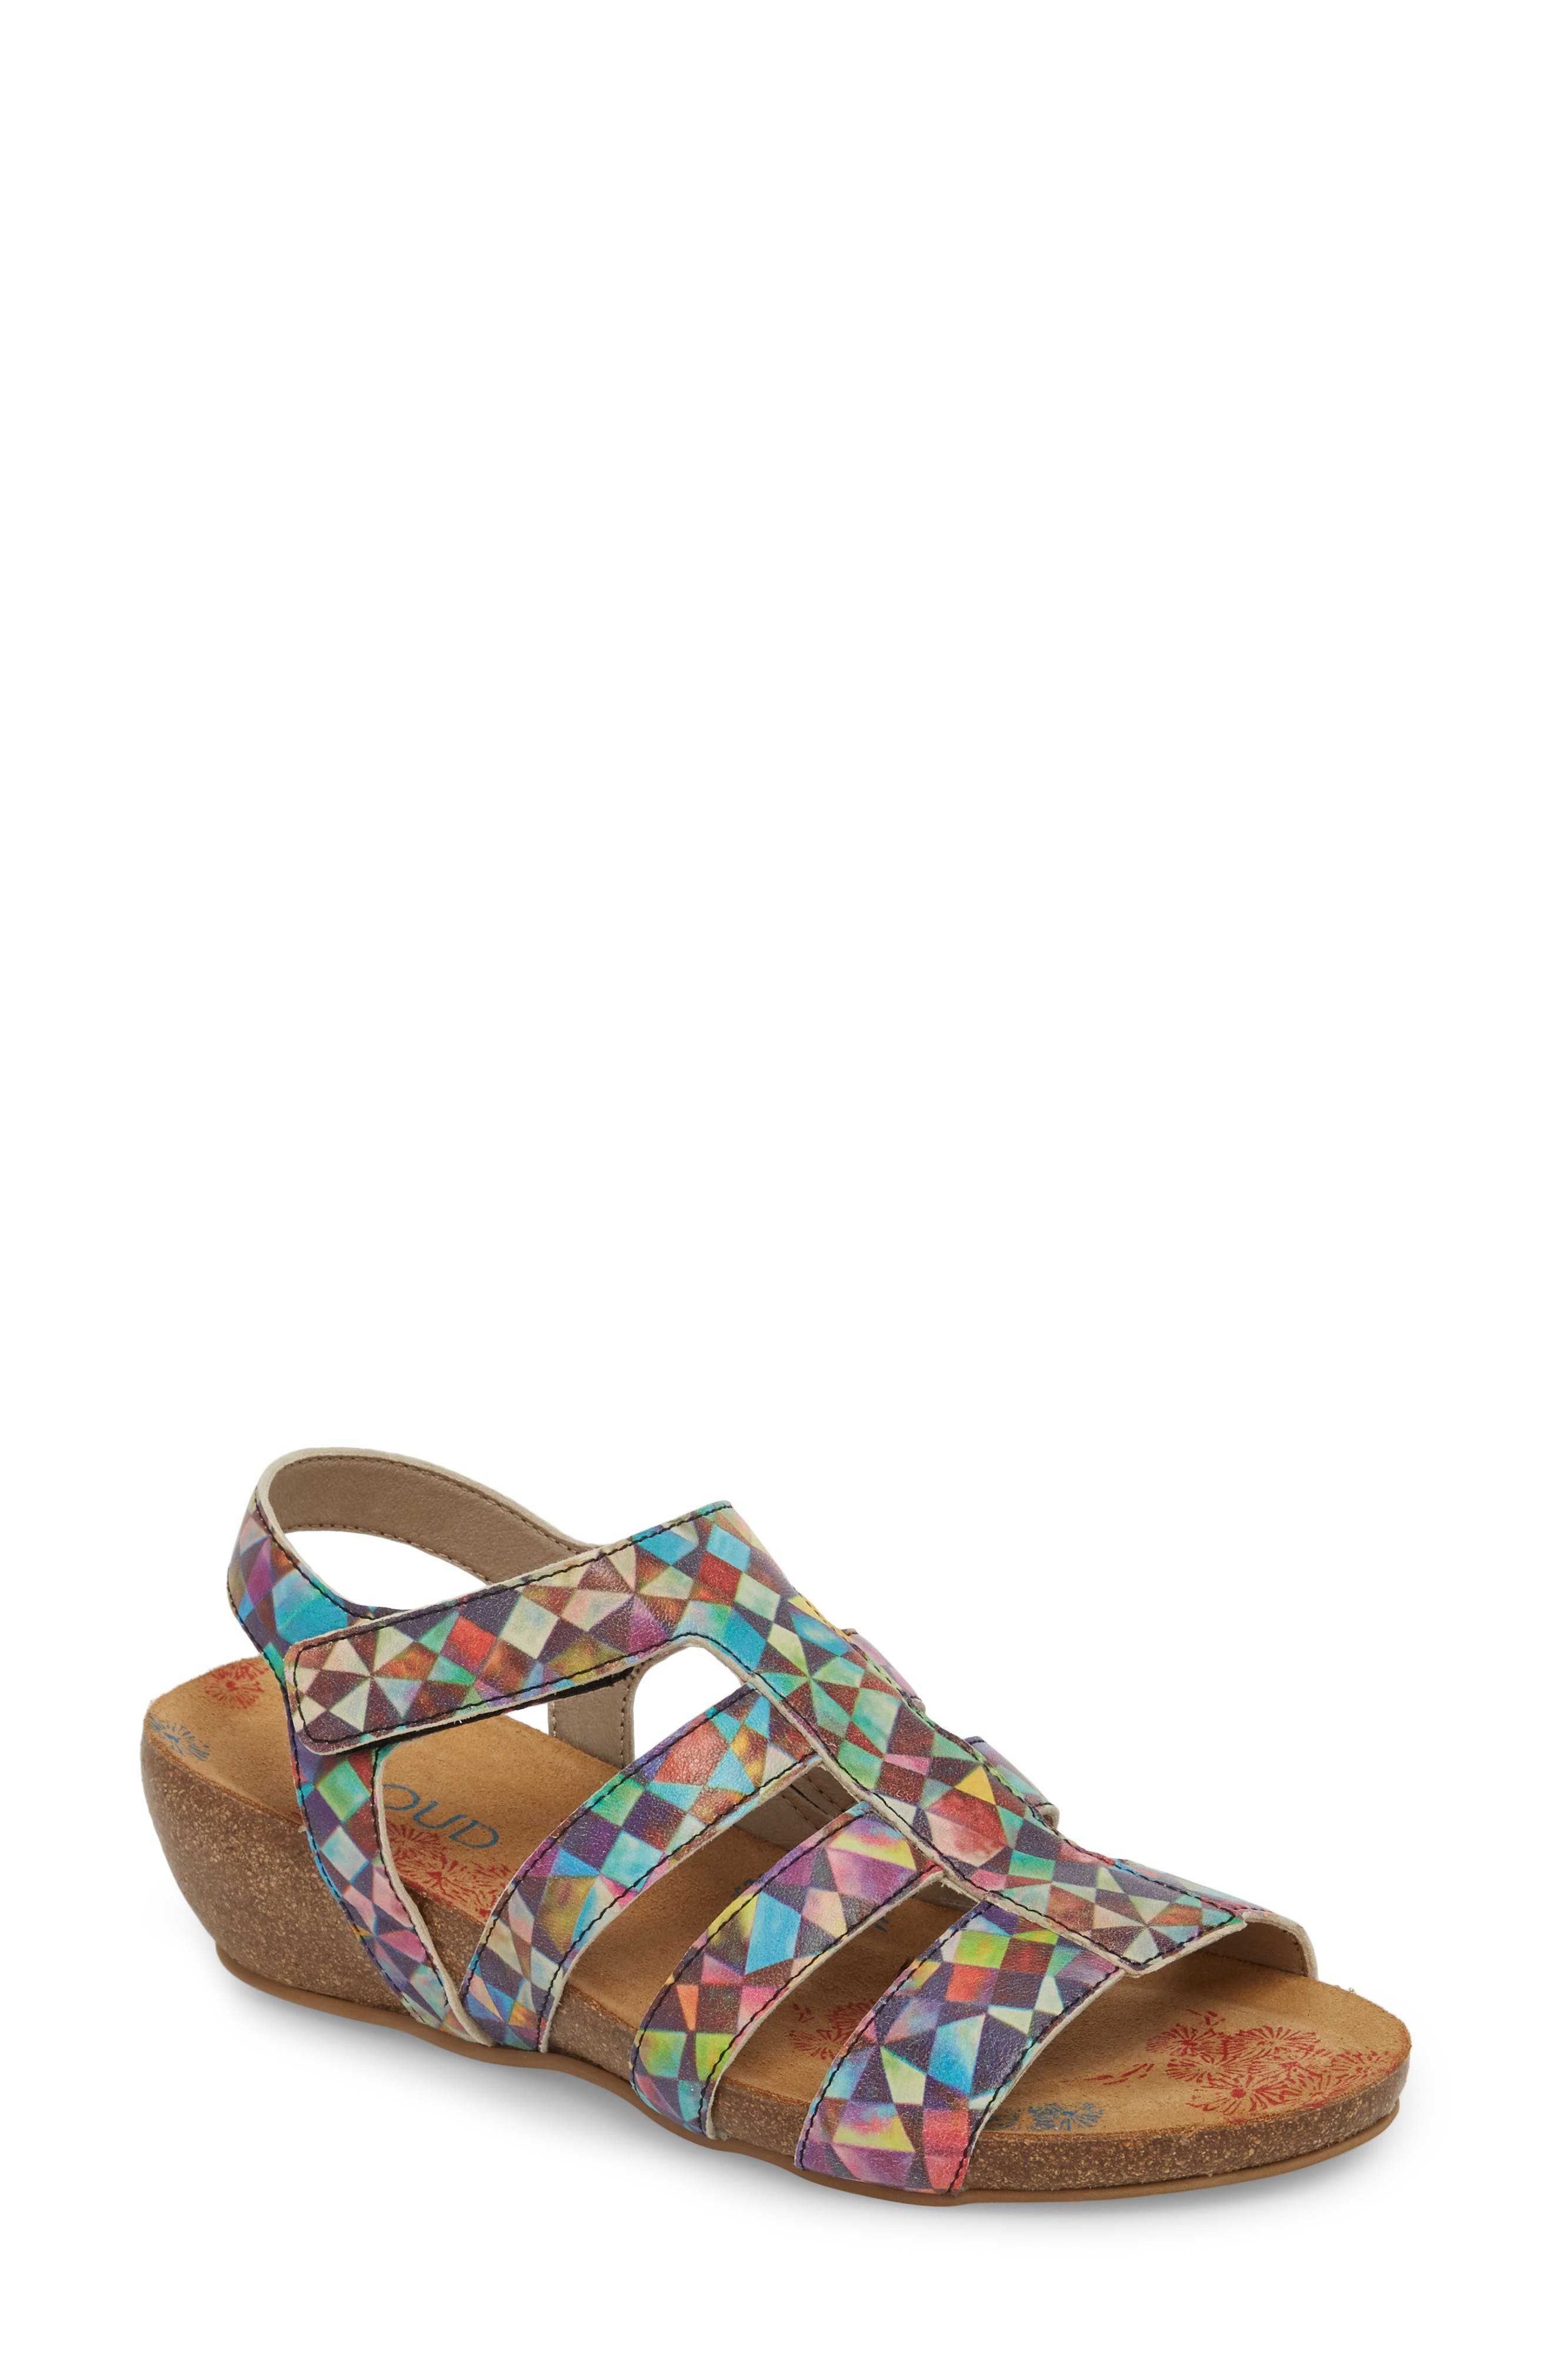 Delta Wedge Sandal,                         Main,                         color, Mystere Leather